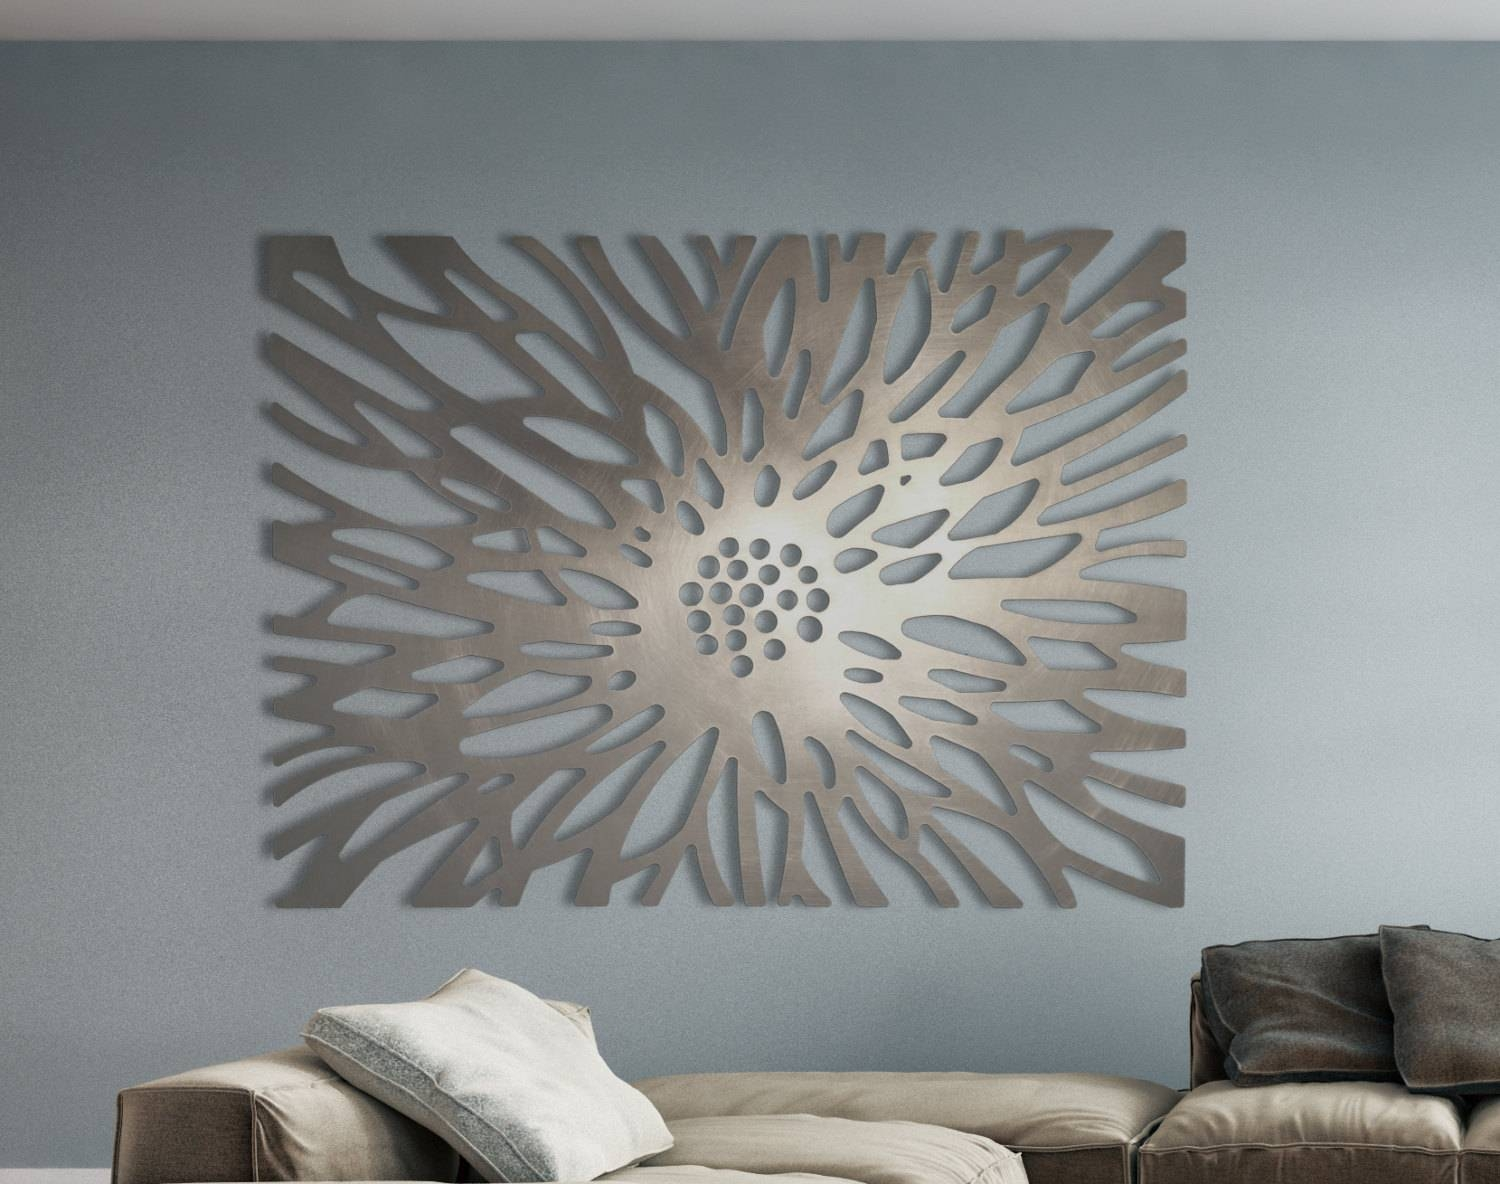 Laser Cut Metal Decorative Wall Art Panel Sculpture For Home For Most Current Laser Cut Metal Wall Art (Gallery 1 of 20)